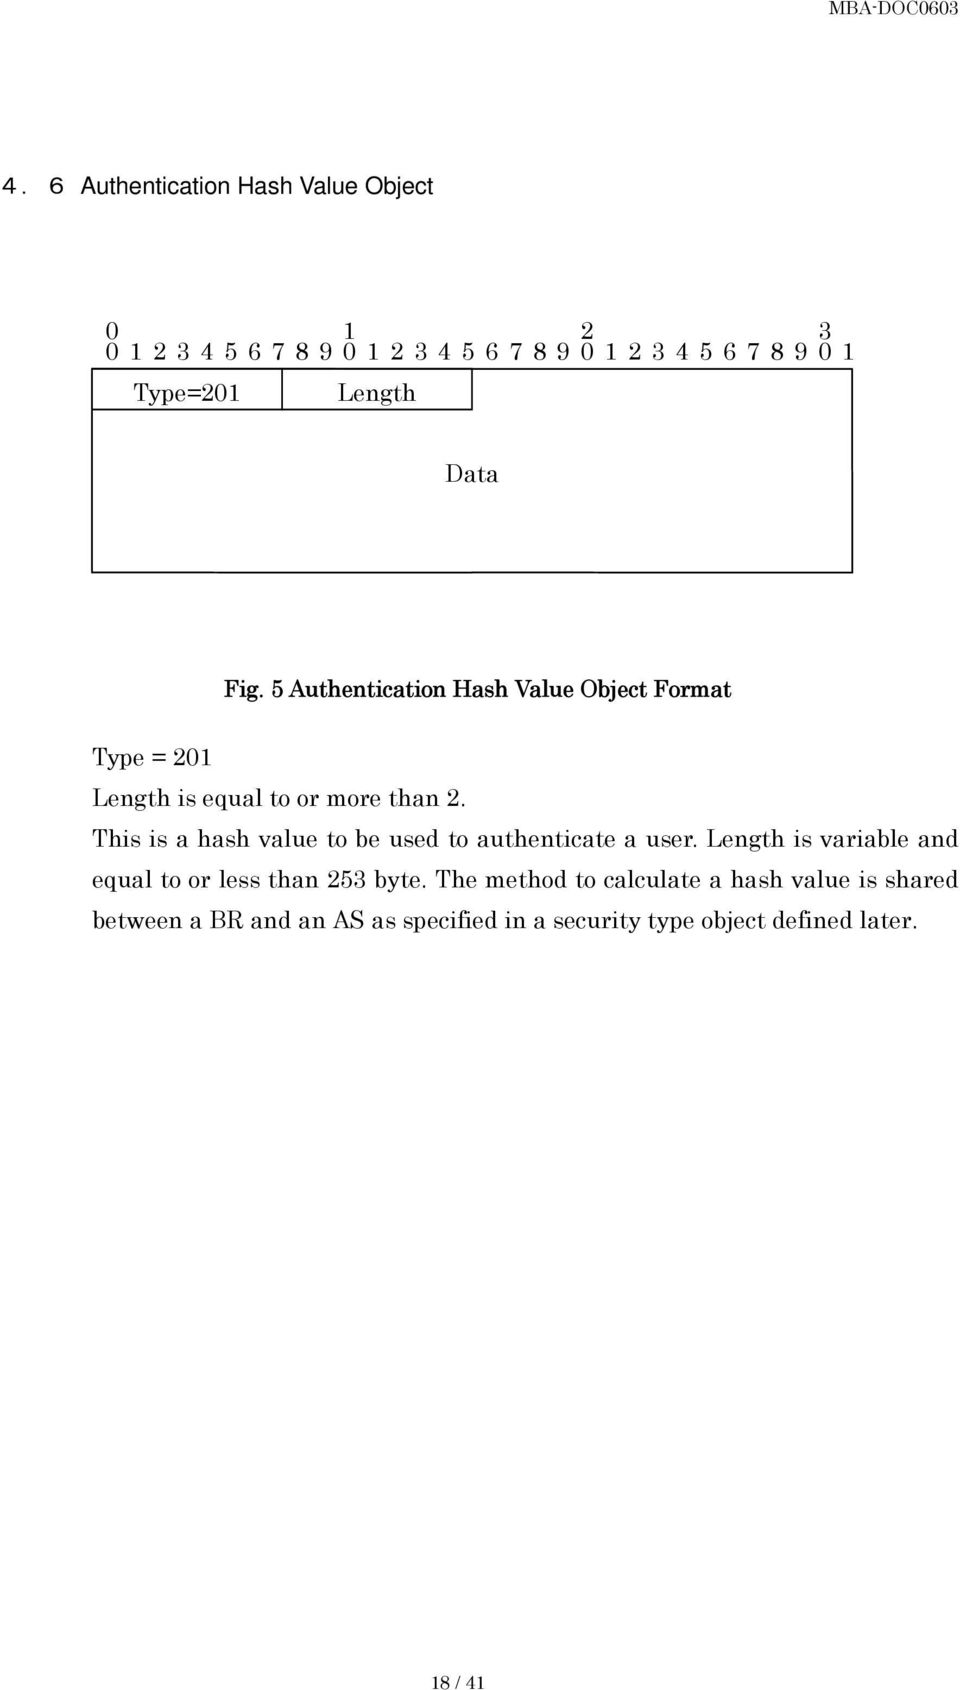 This is a hash value to be used to authenticate a user. Length is variable and equal to or less than 253 byte.